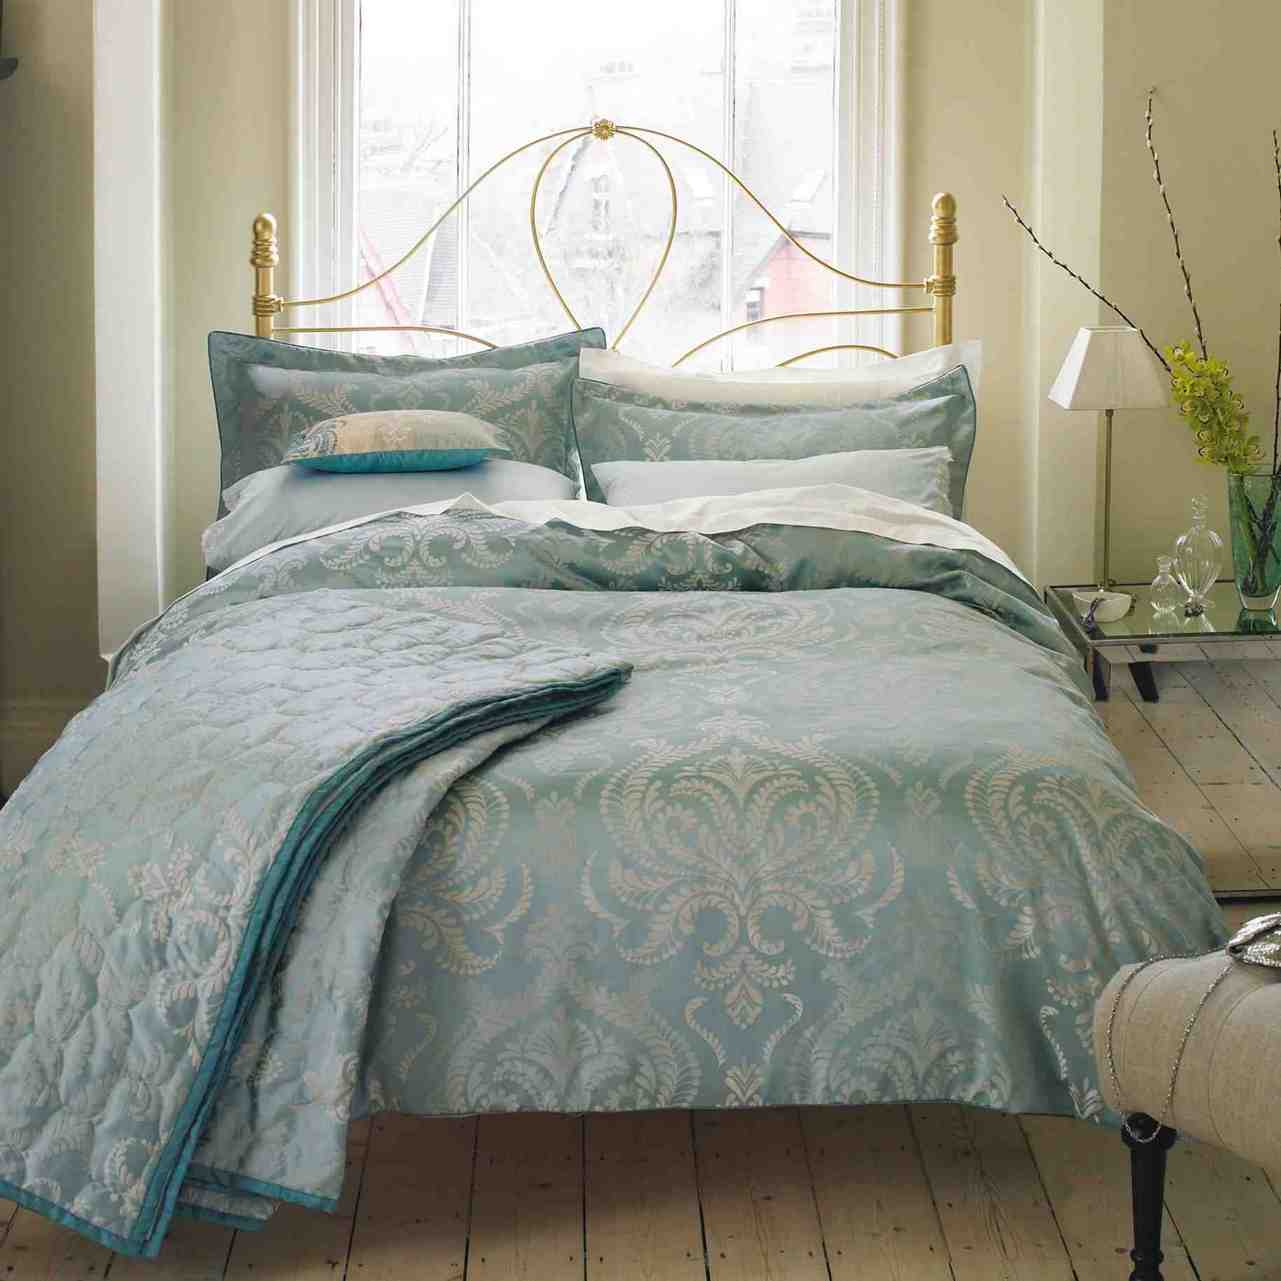 Bedding Sets With Matching Curtains Home Furniture Design